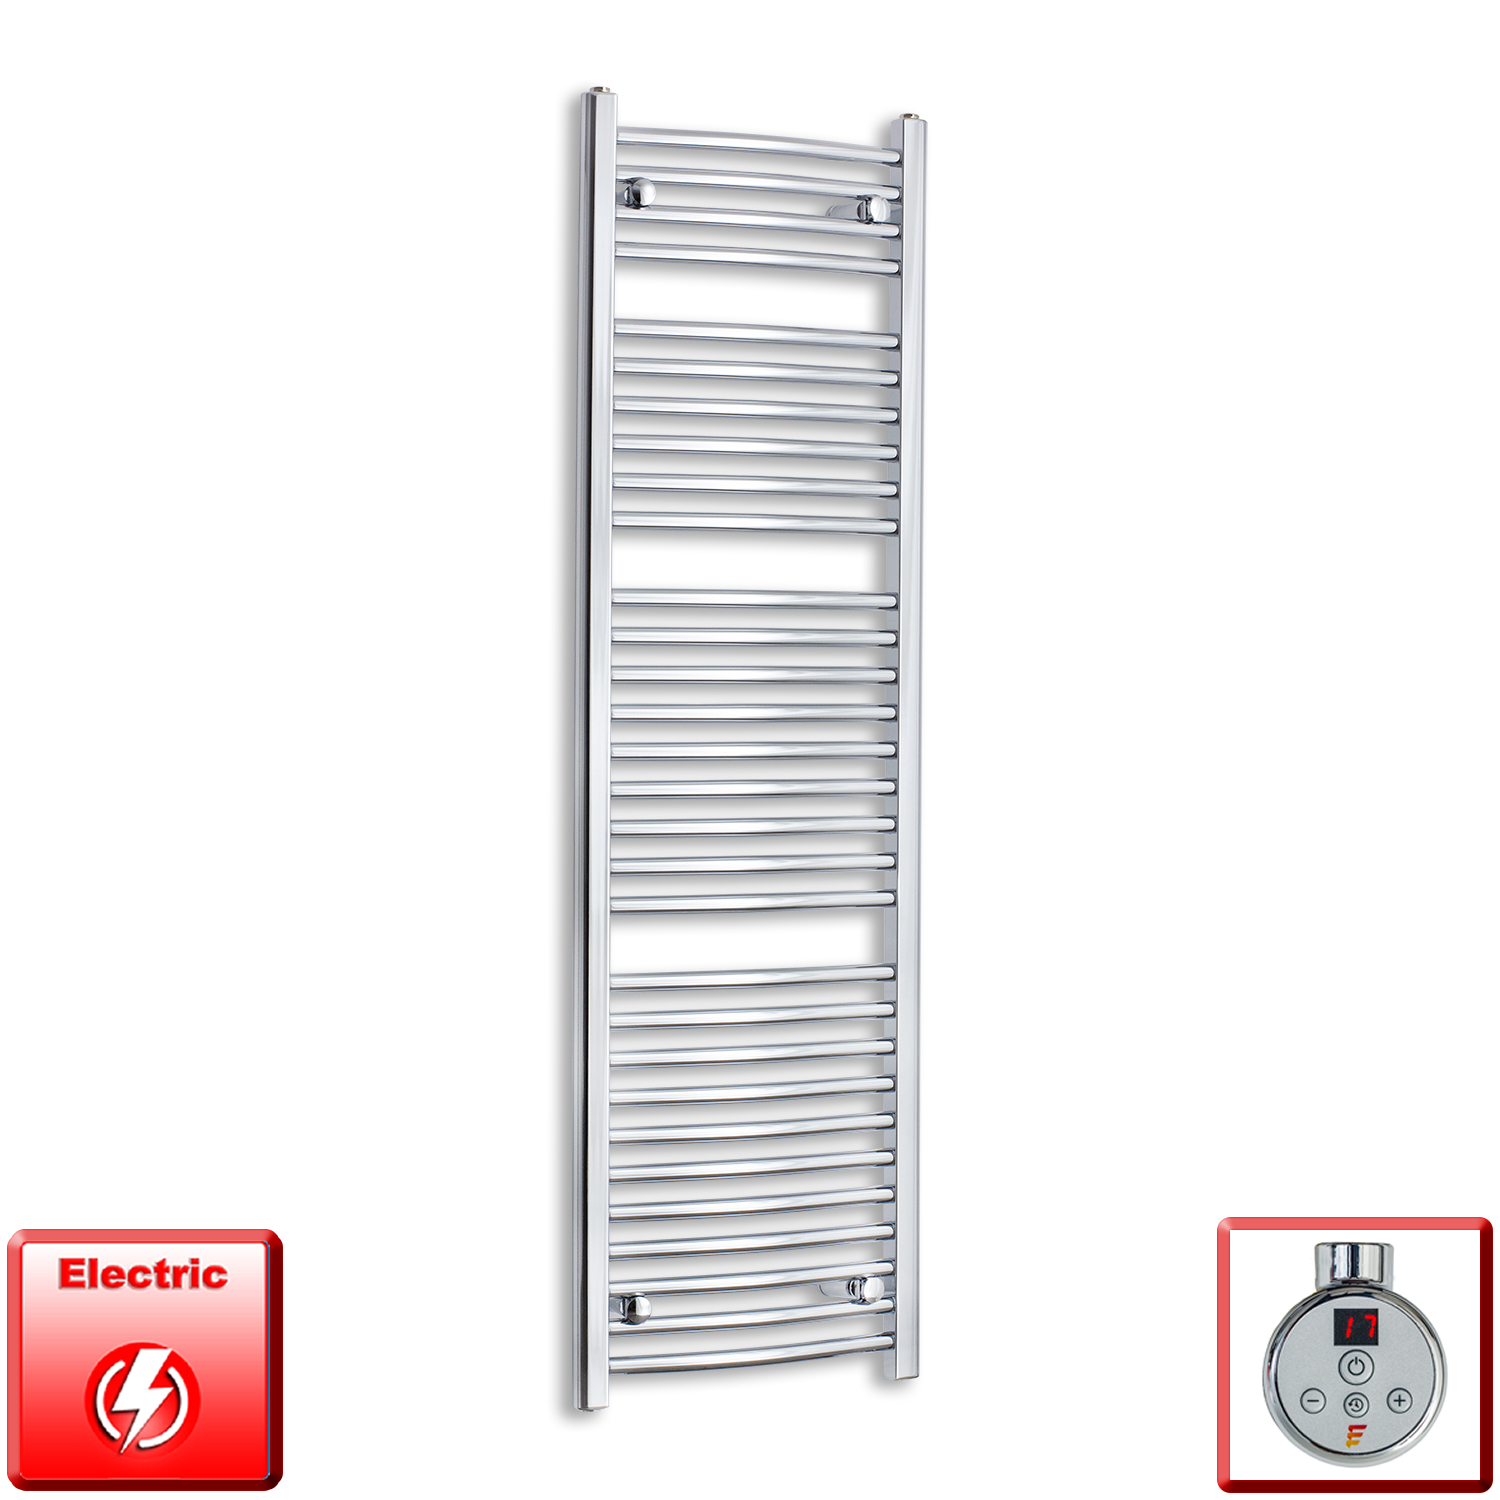 1500mm High 450mm Wide Pre-Filled Electric Heated Towel Rail Radiator Straight or Curved Chrome